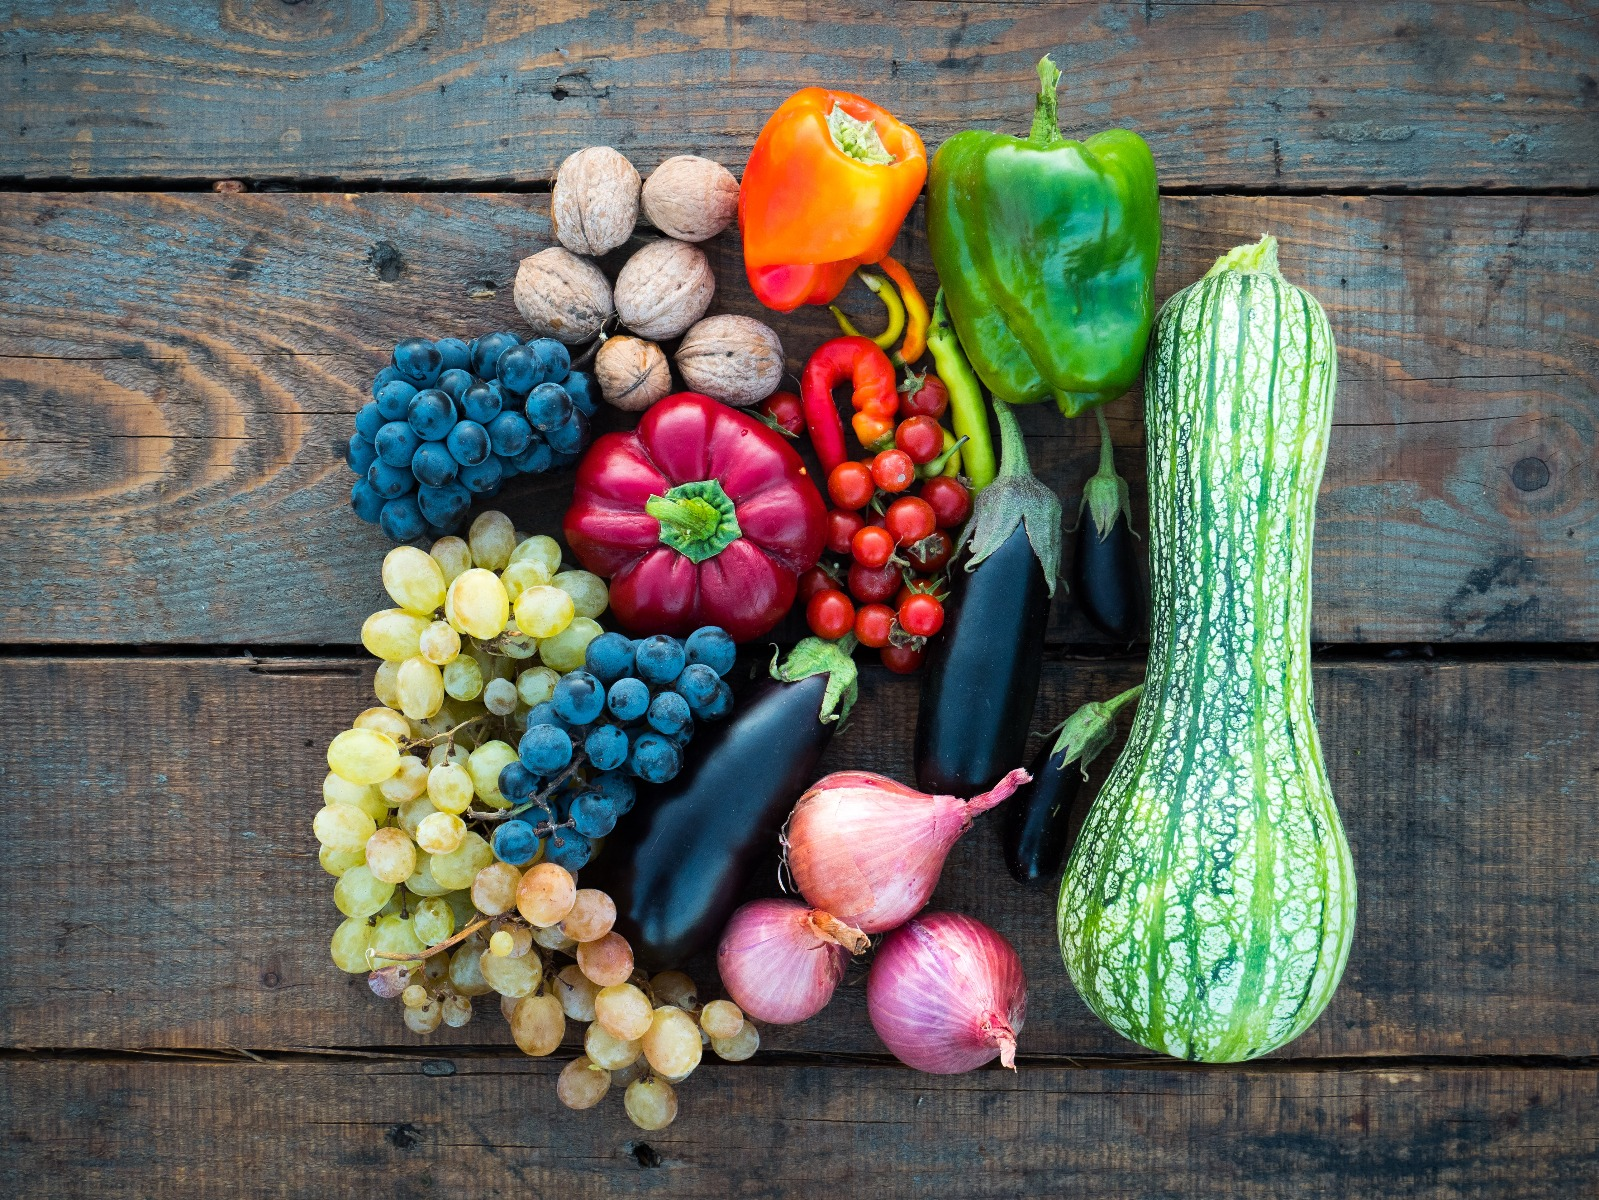 assorted fruits and vegetables on wood table